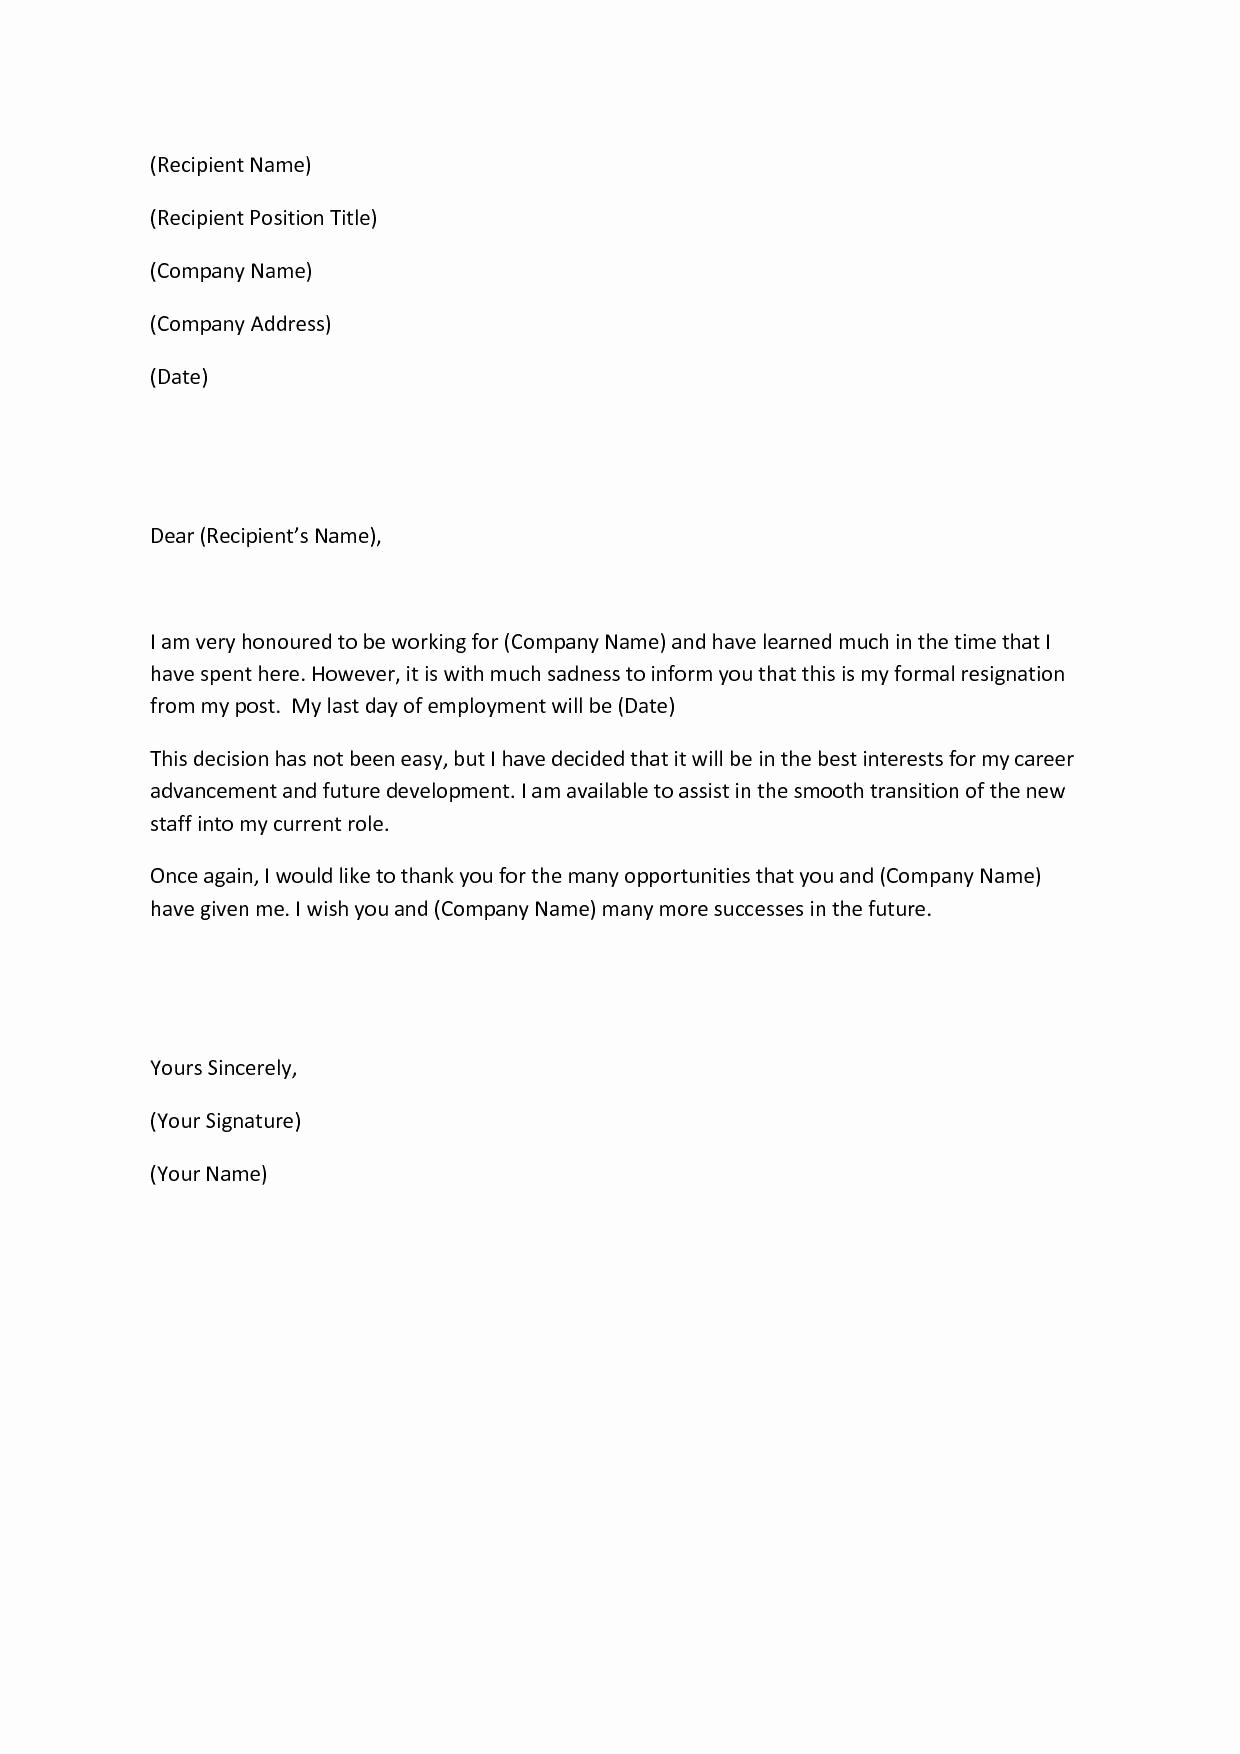 Medical Scribe Cover Letter Example Best Of Medical Scribe Cover Letter Lovely Examples Cover Letters